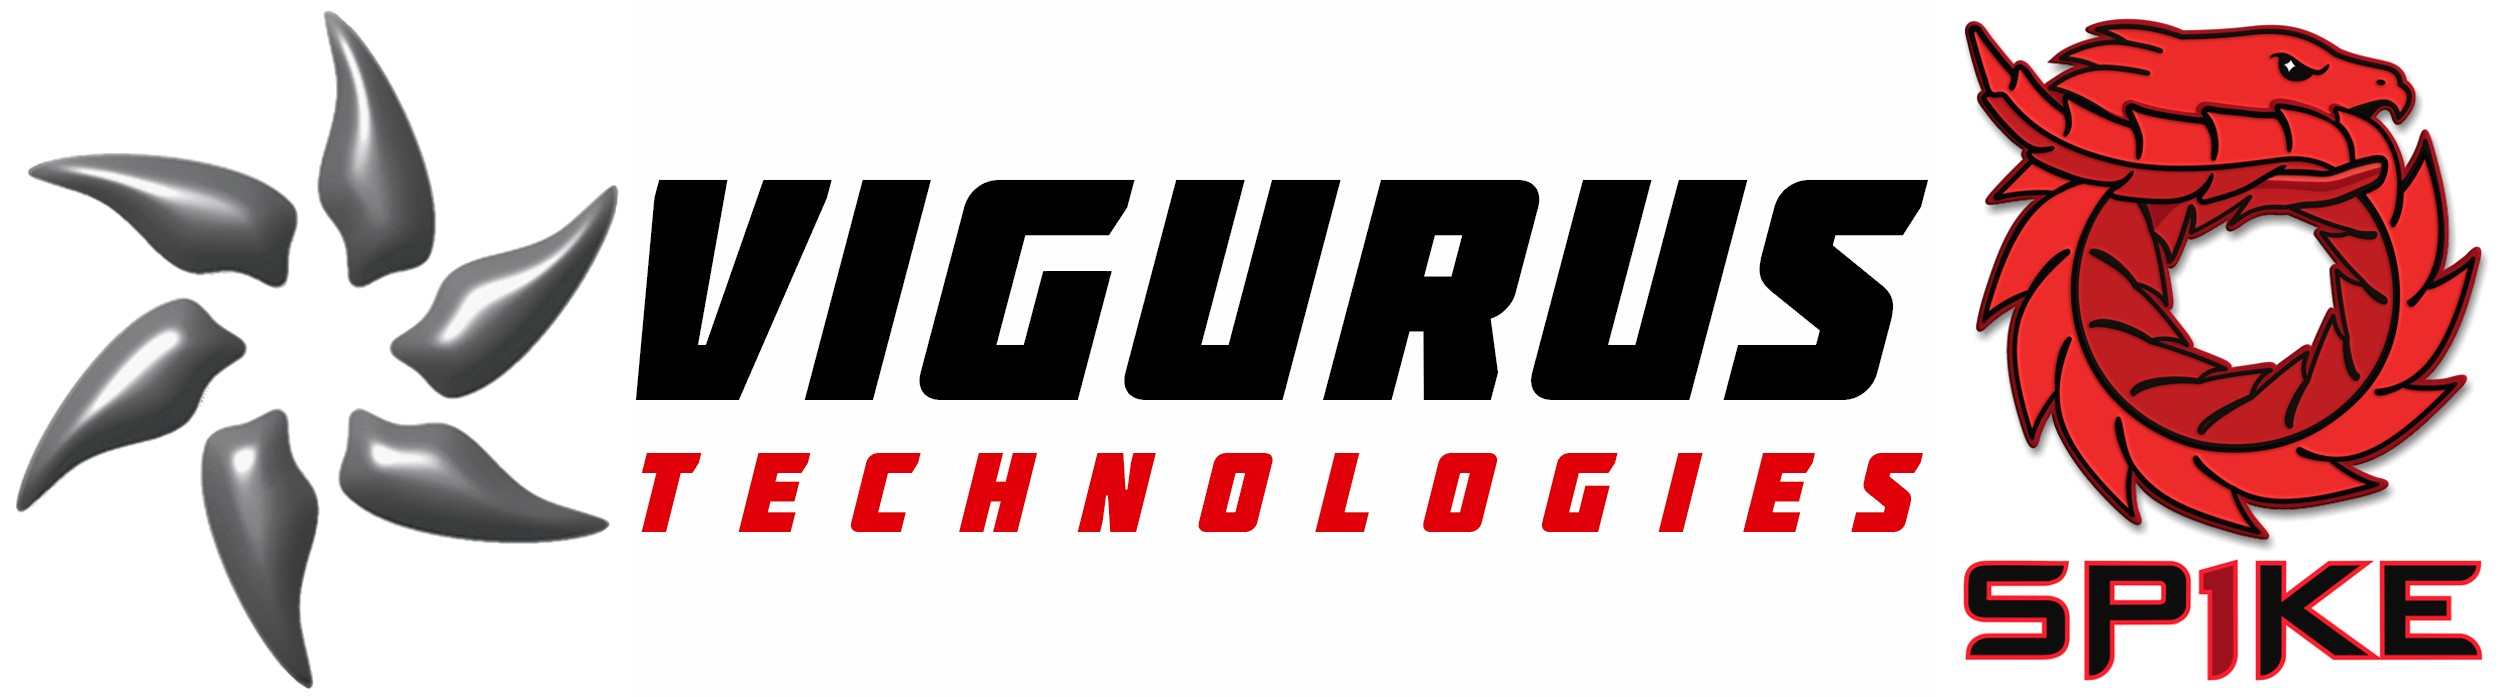 Vigurus Technologies Inc.